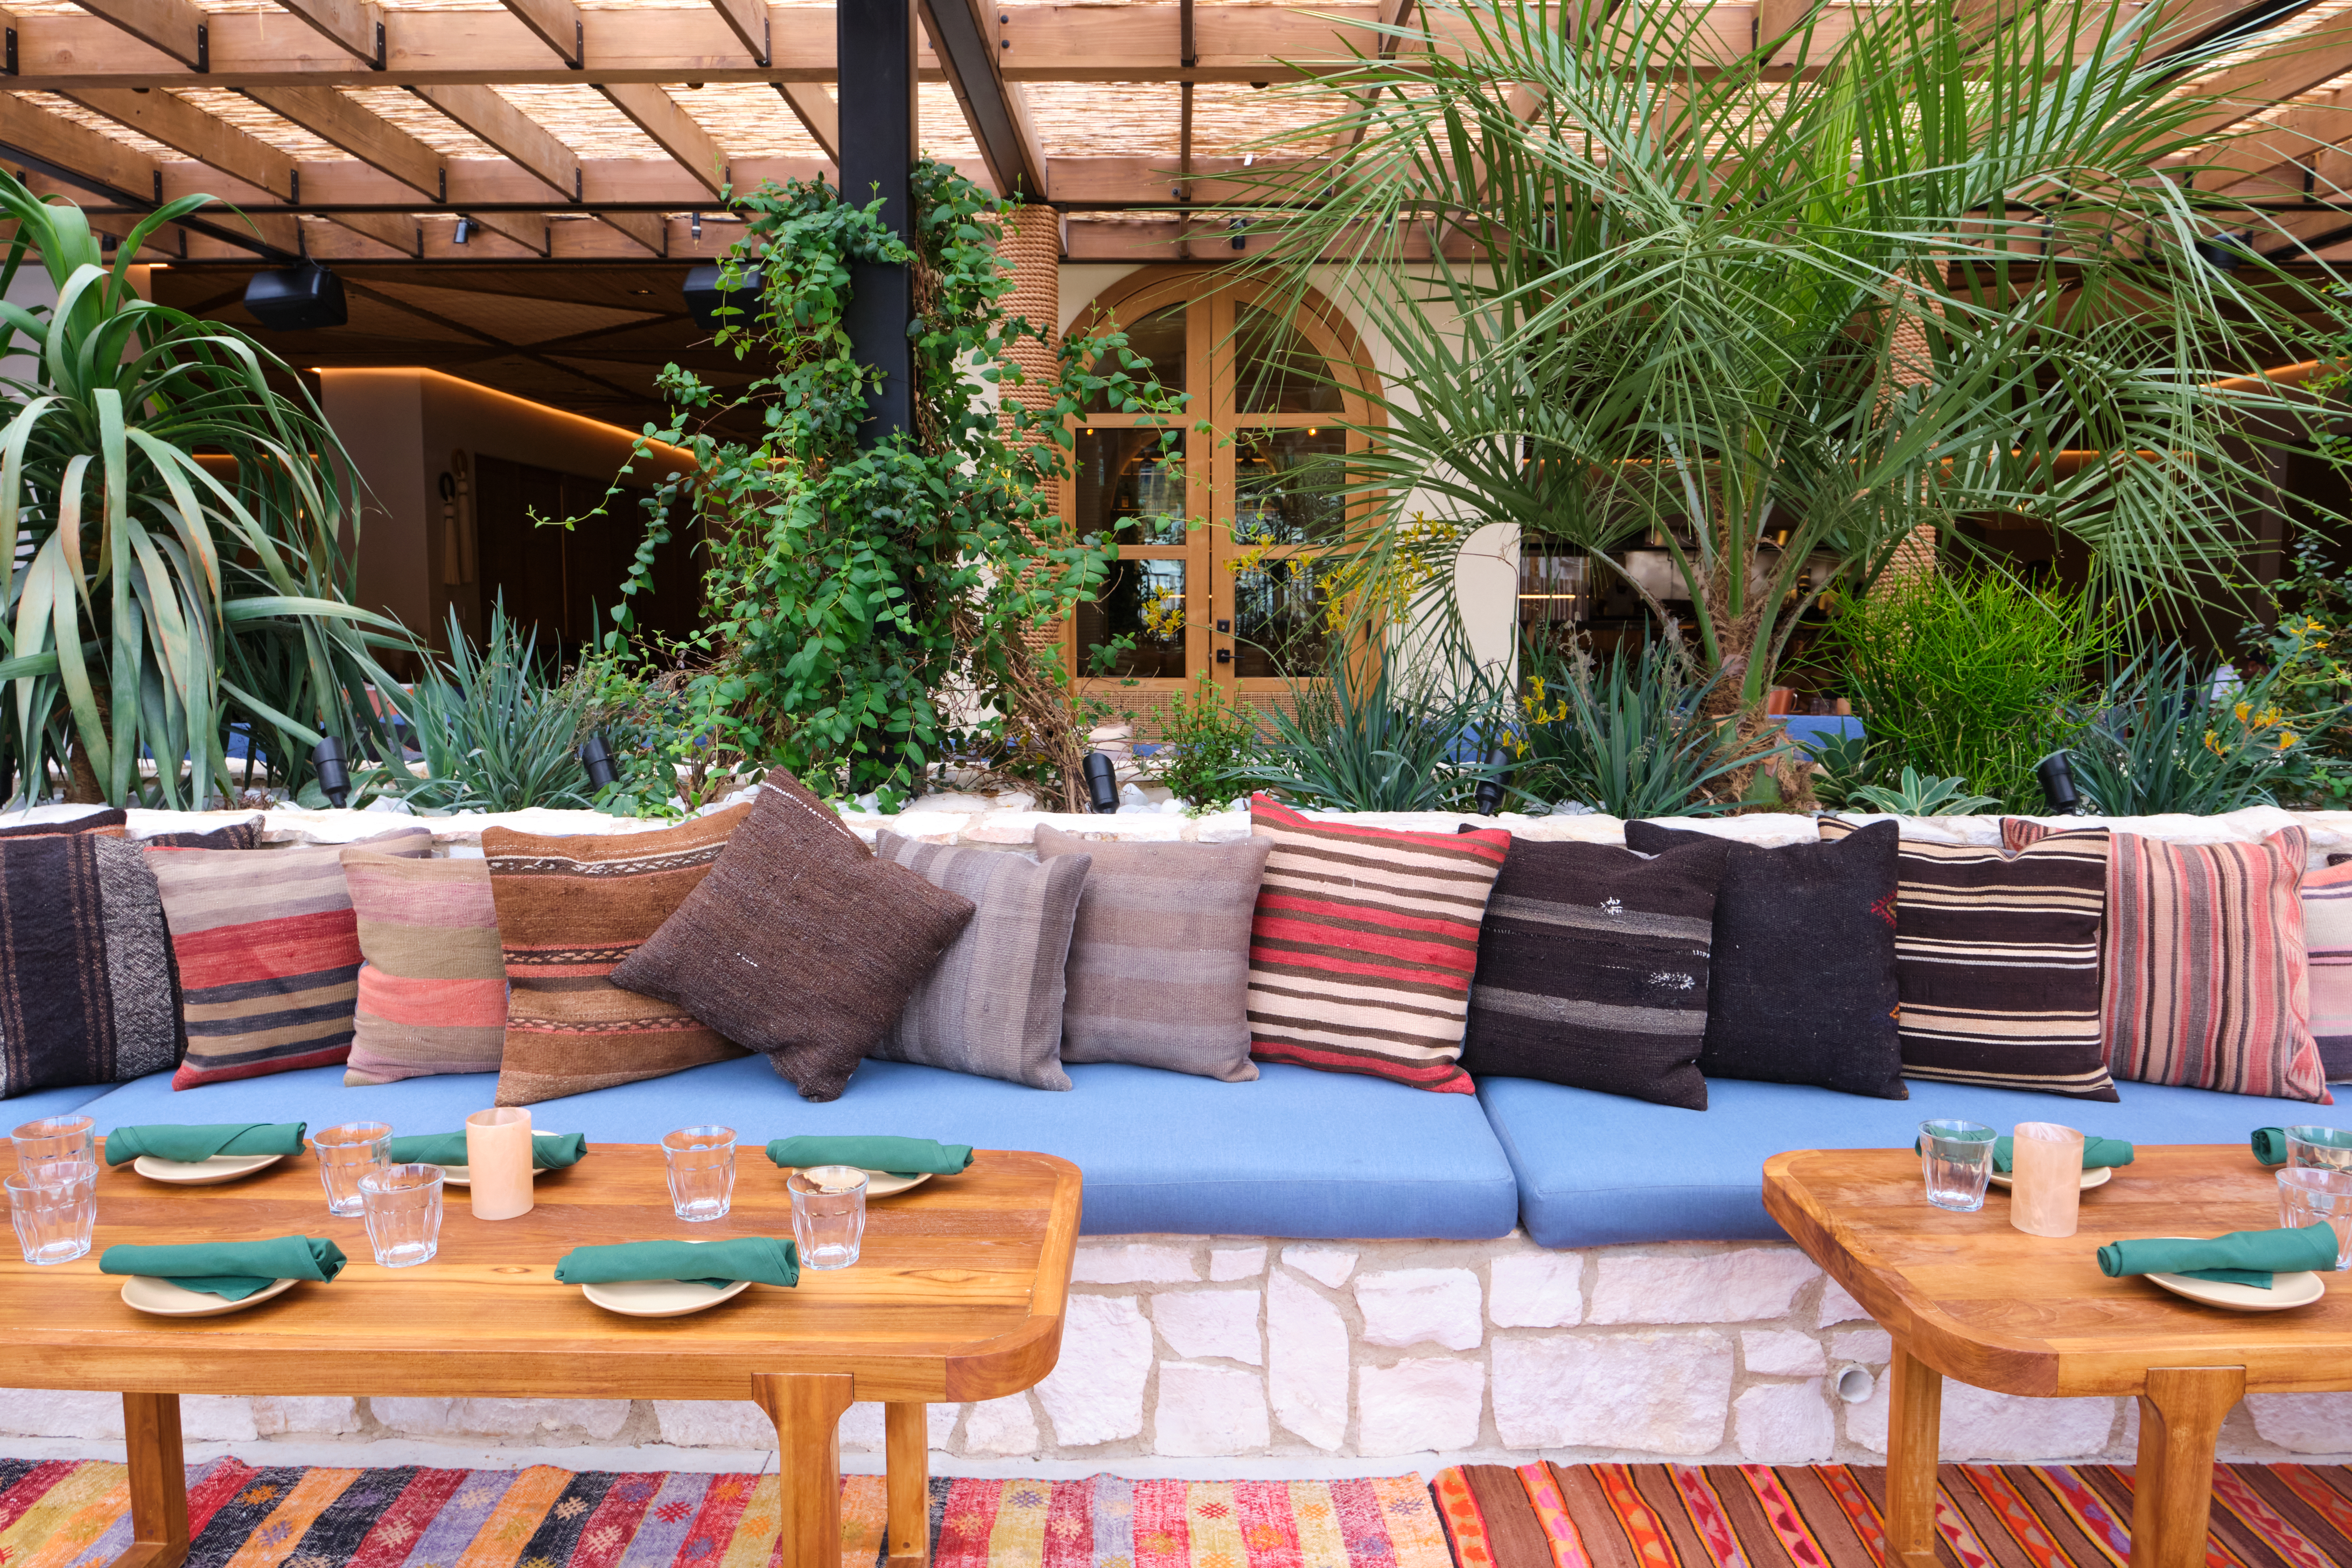 A patio with a blue banquette and pillows with wooden tables in front of it.